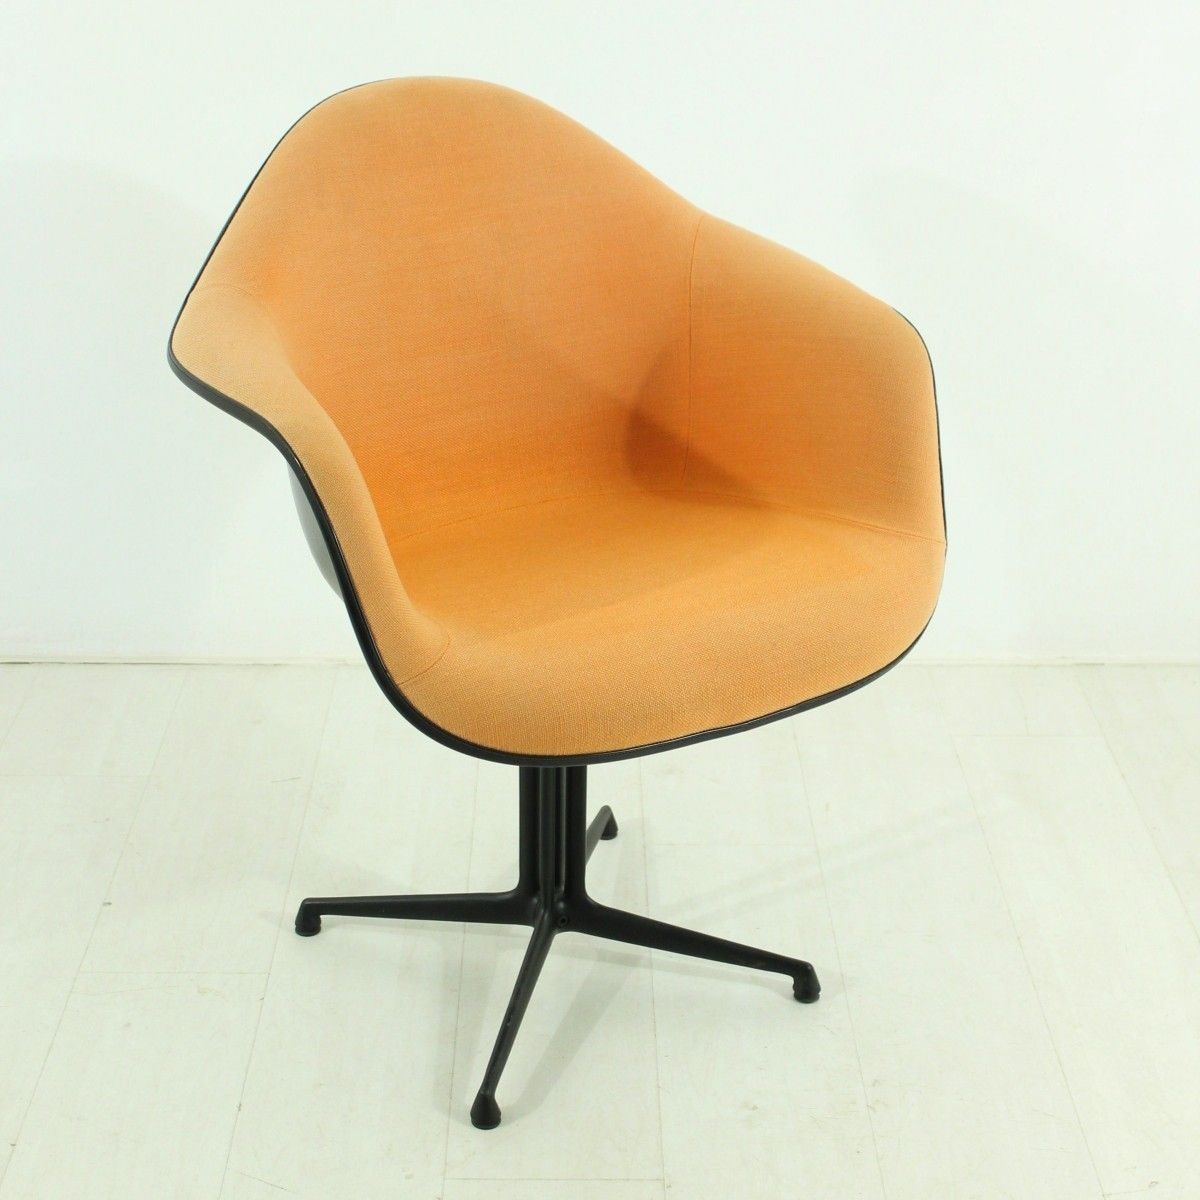 Vintage terracotta la fonda chair by charles ray eames for Eames chair deutschland